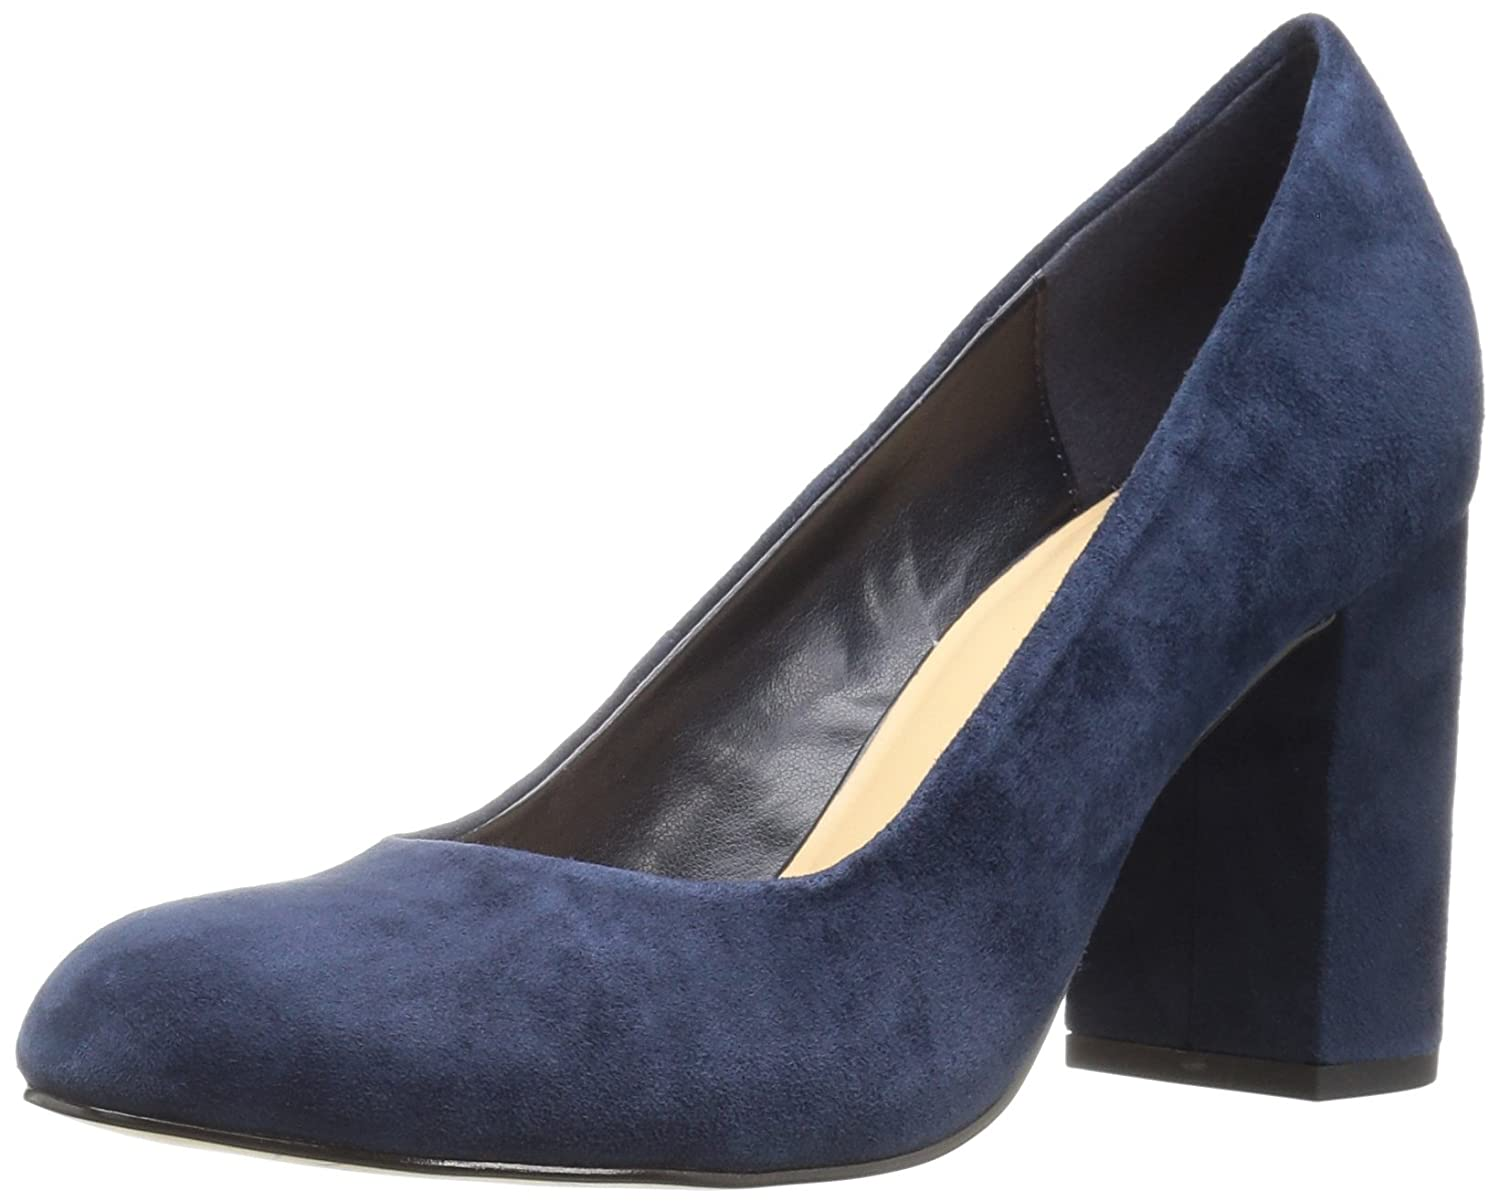 Bella Vita Women's Nara Dress Pump B01ED2R9FE 7 E US|Navy Kid Suede